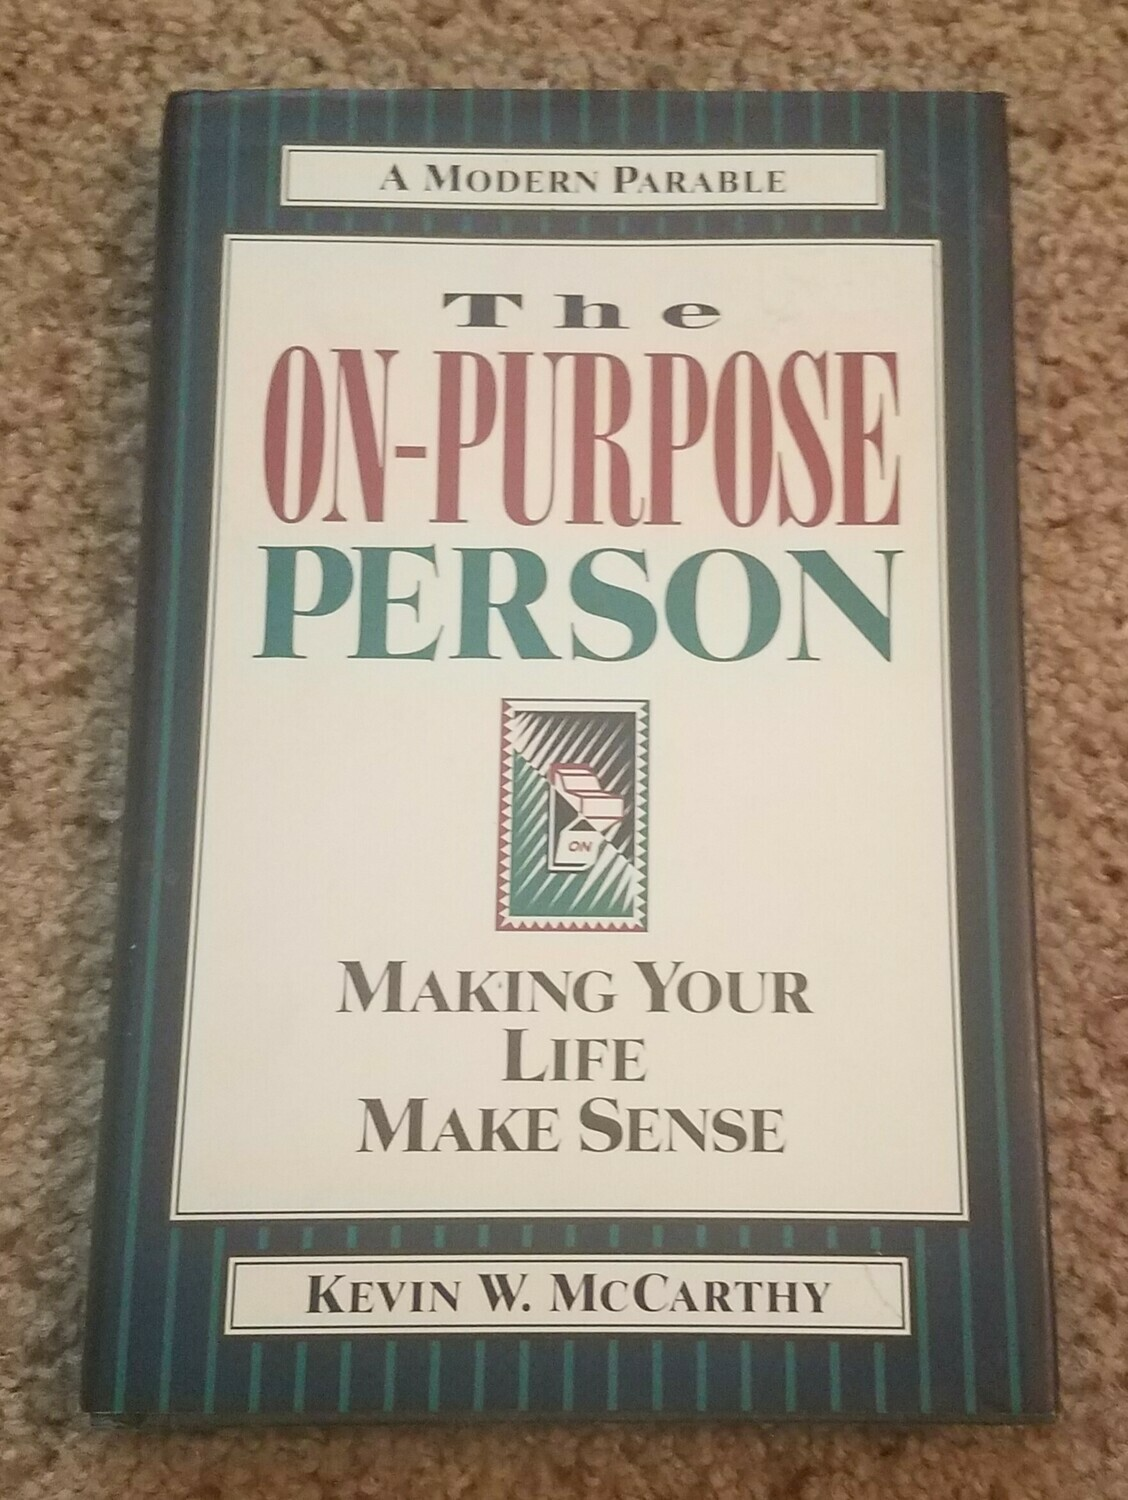 The On-Purpose Person: Making Your Life Make Sense by Kevin W. McCarthy